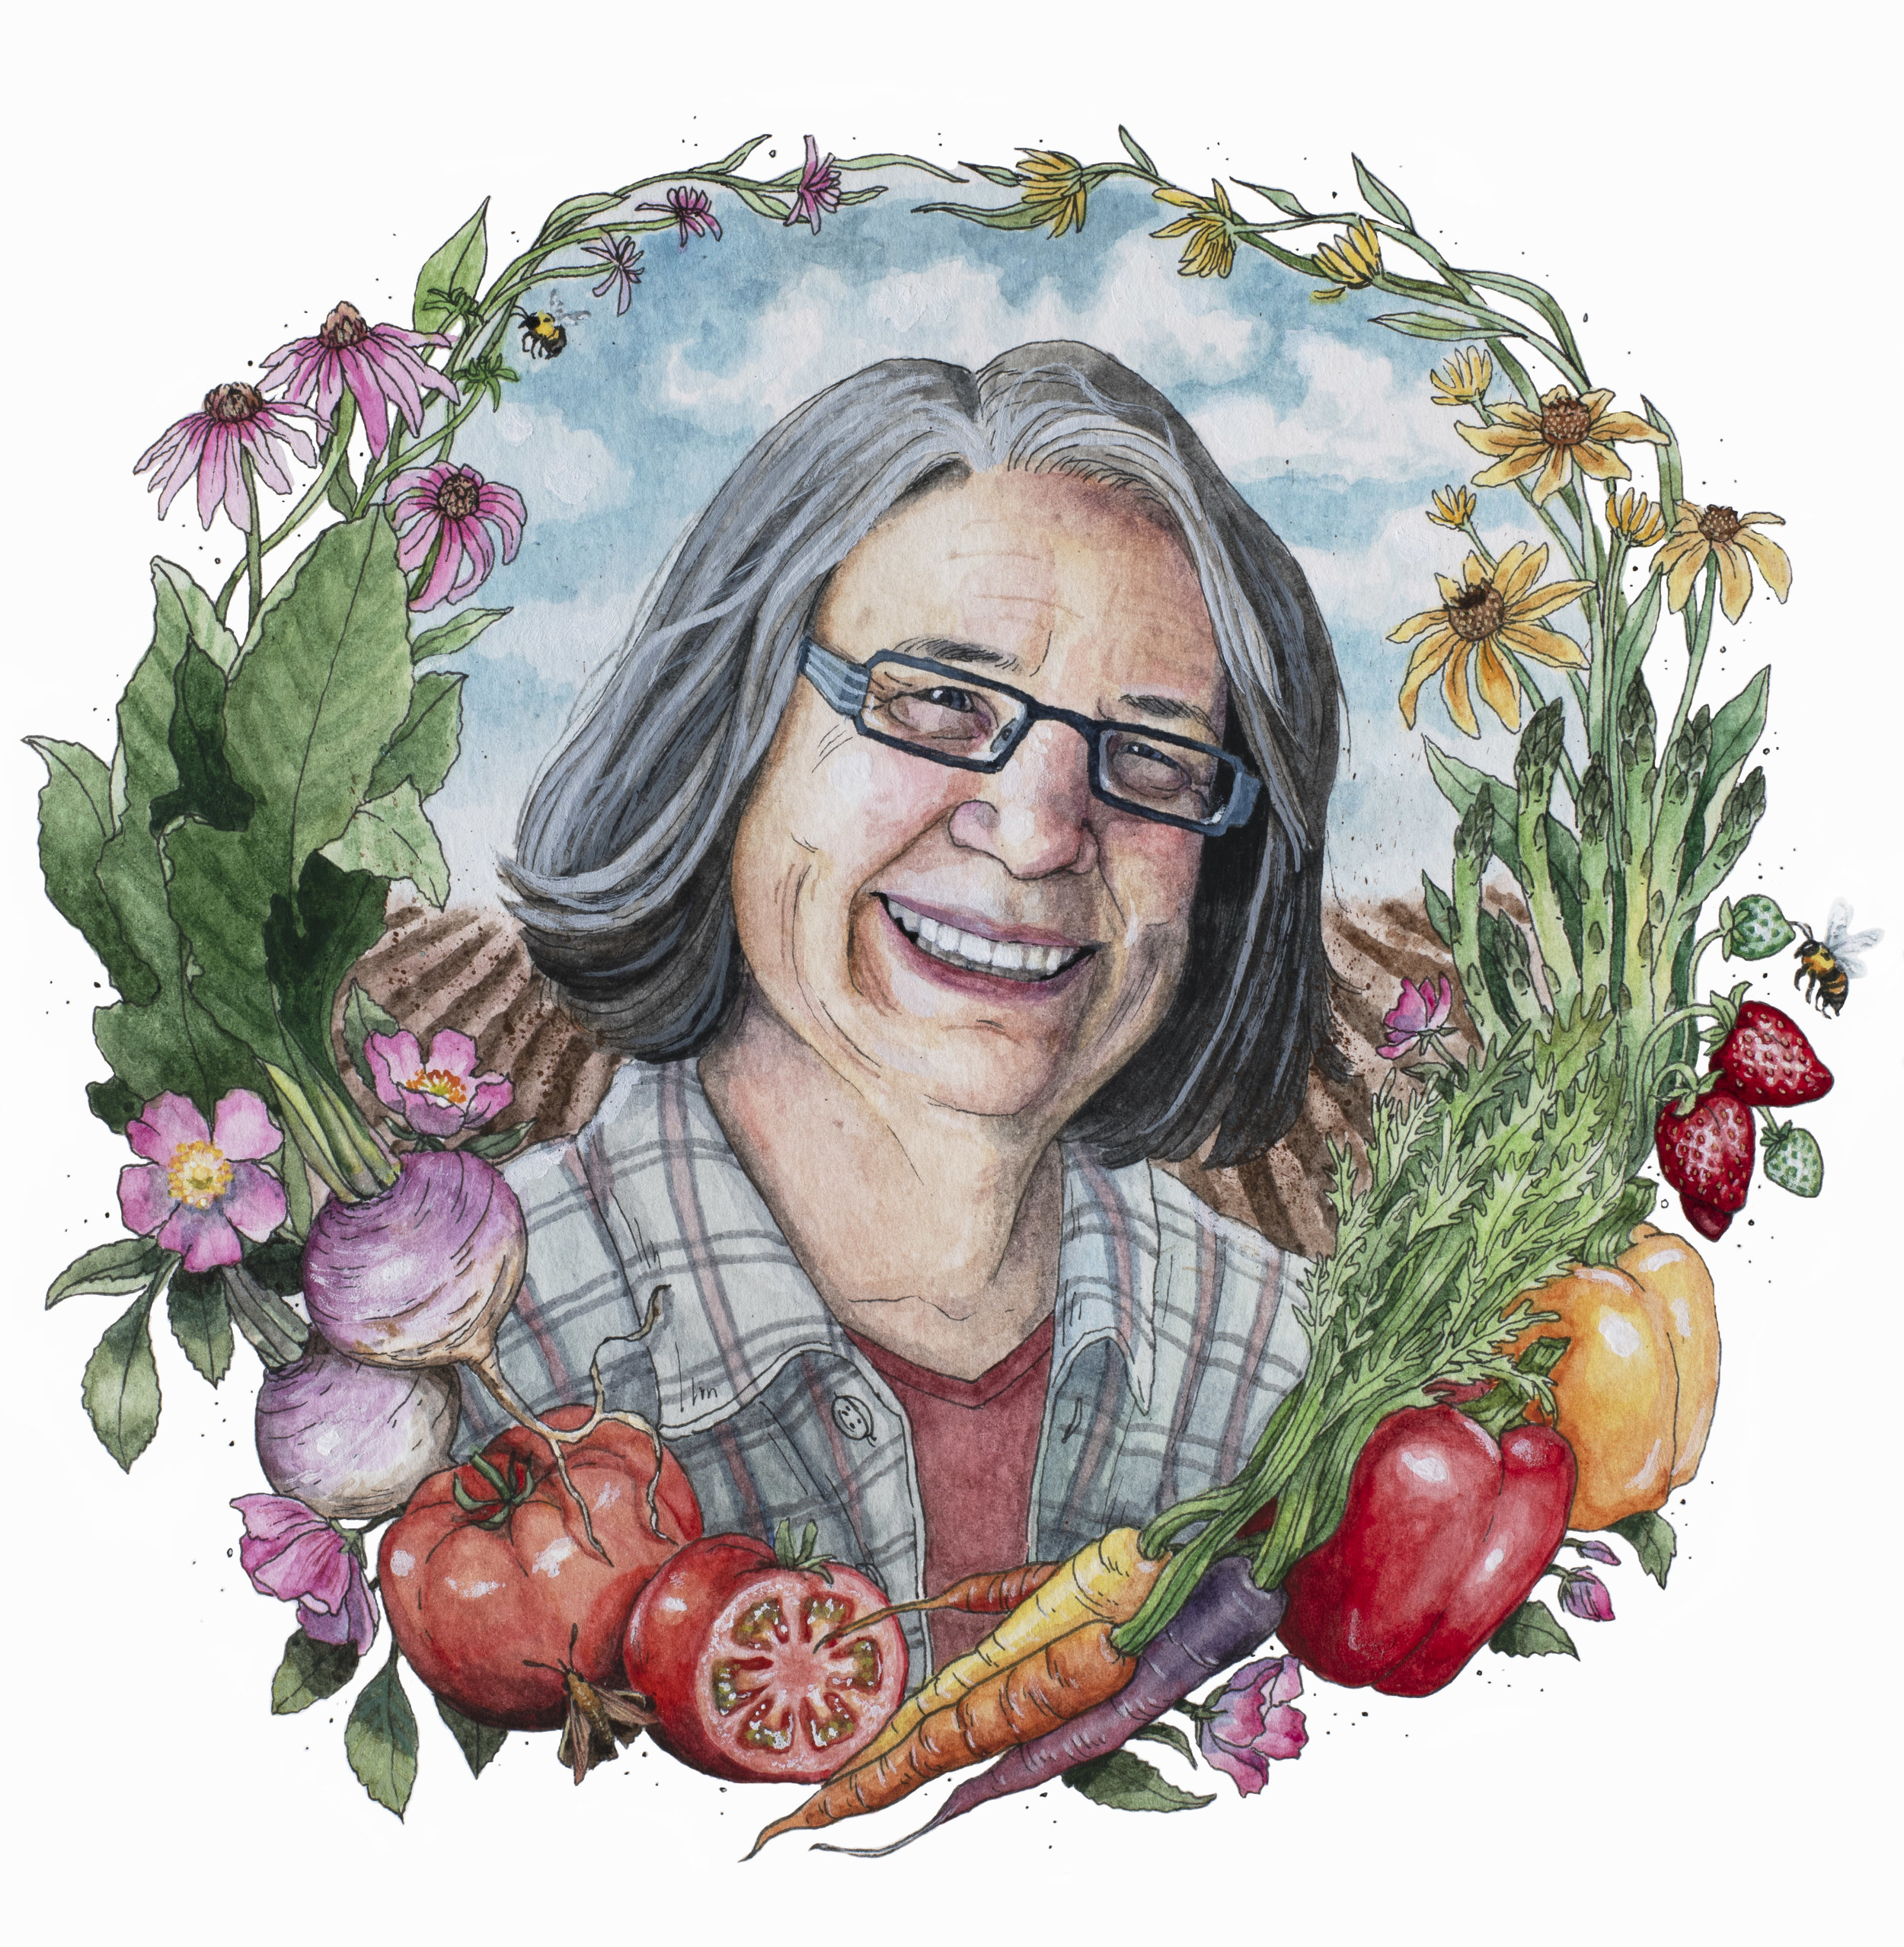 Portrait of Founding Mother Denise O'Brien by Caylin Graham - Caylin's piece was featured in Amazing Iowa Women, recently released by Raygun. More of her art can be found here.Source: Amazing Iowa Women by Katy Swalwell (RAYGUN, 2018)